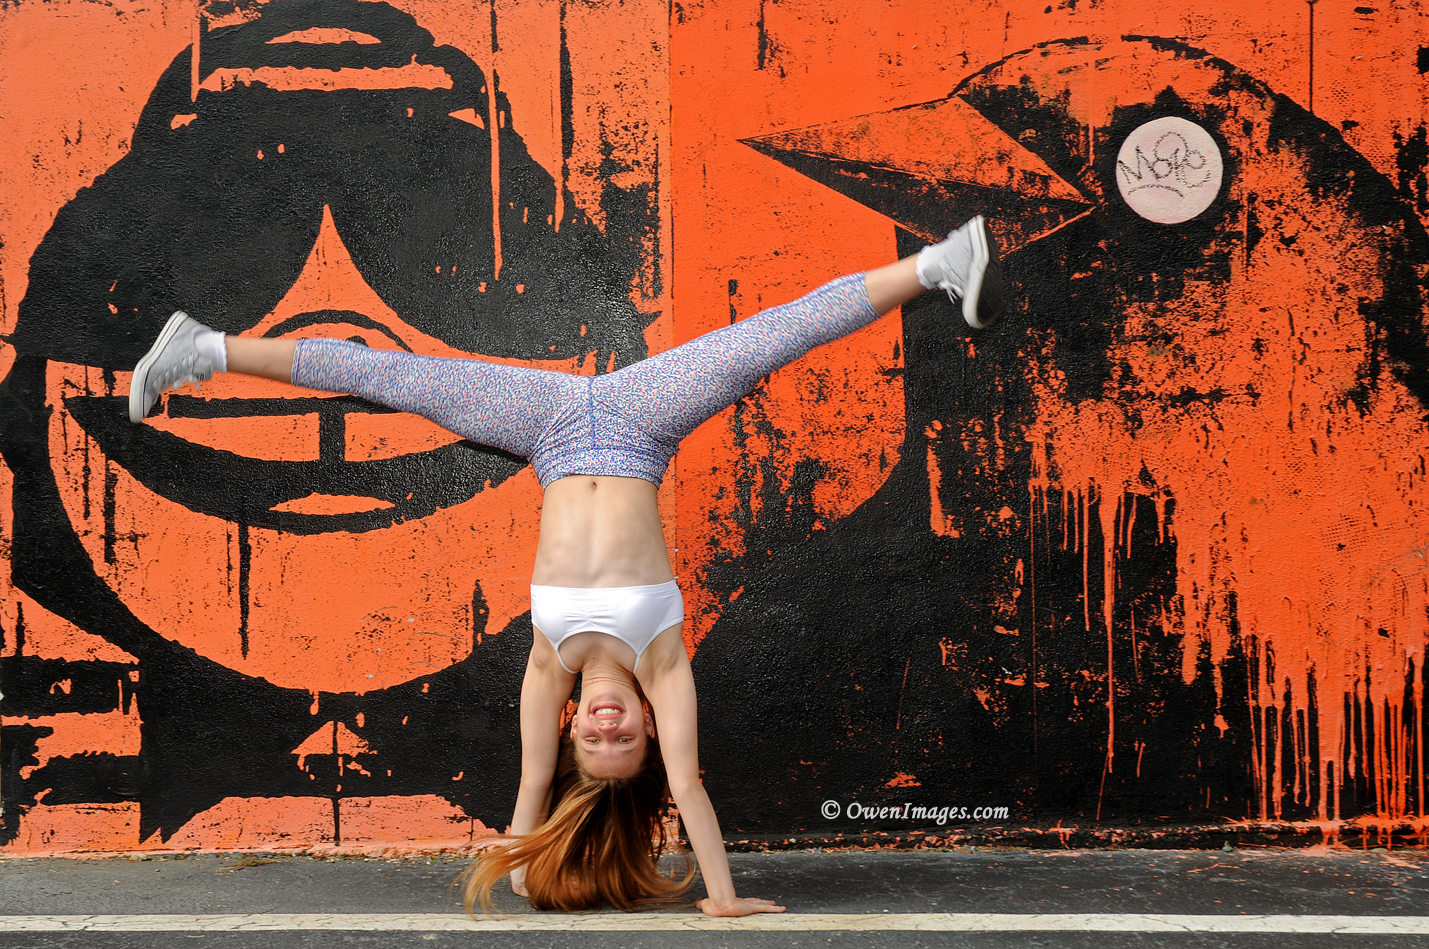 Gymnast doing a cartwheel in front of a mural in downtown Saint Petersburg, Florida